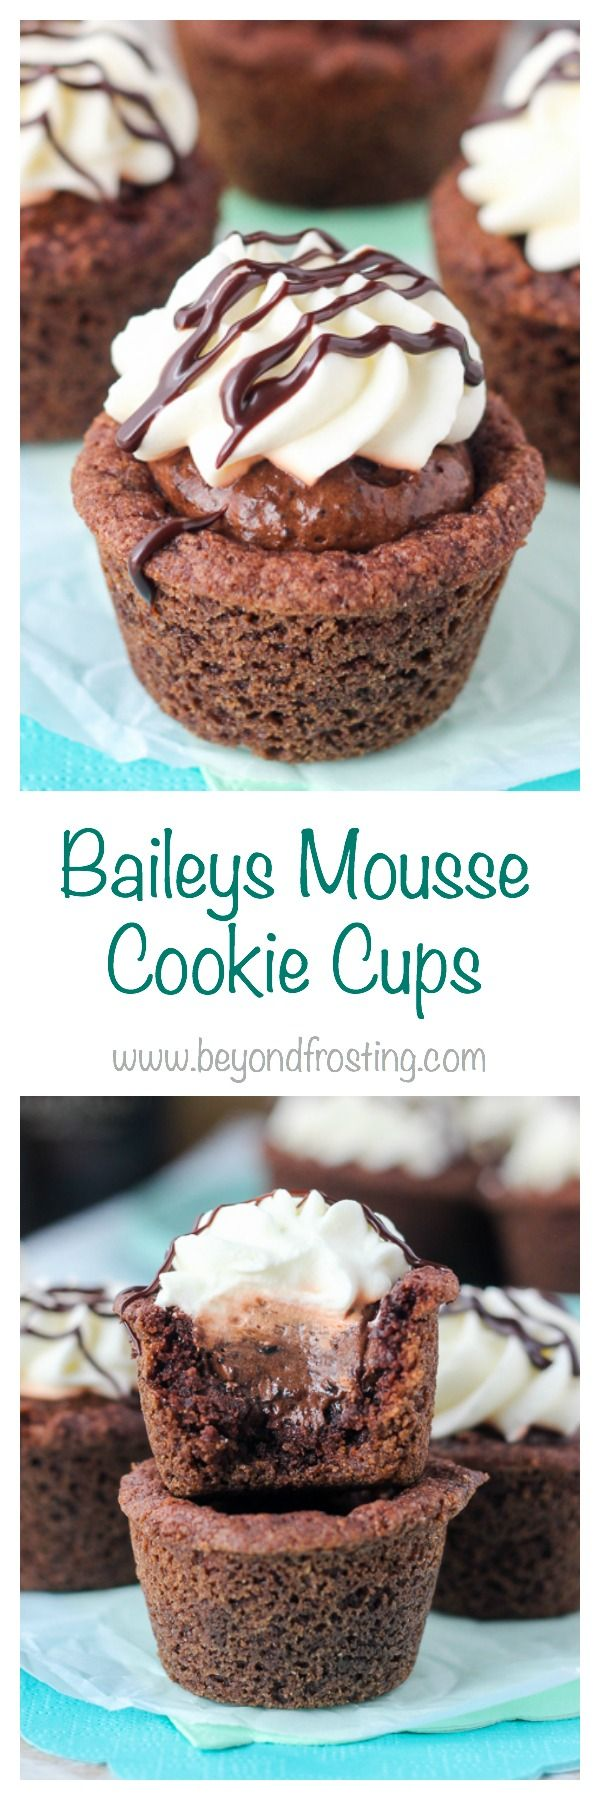 These Baileys Mousse cookie Cups start with a chocolate pudding cookie. They're filled with a silky Baileys Chocolate Mousse and topped with whipped cream and a Baileys chocolate ganache.